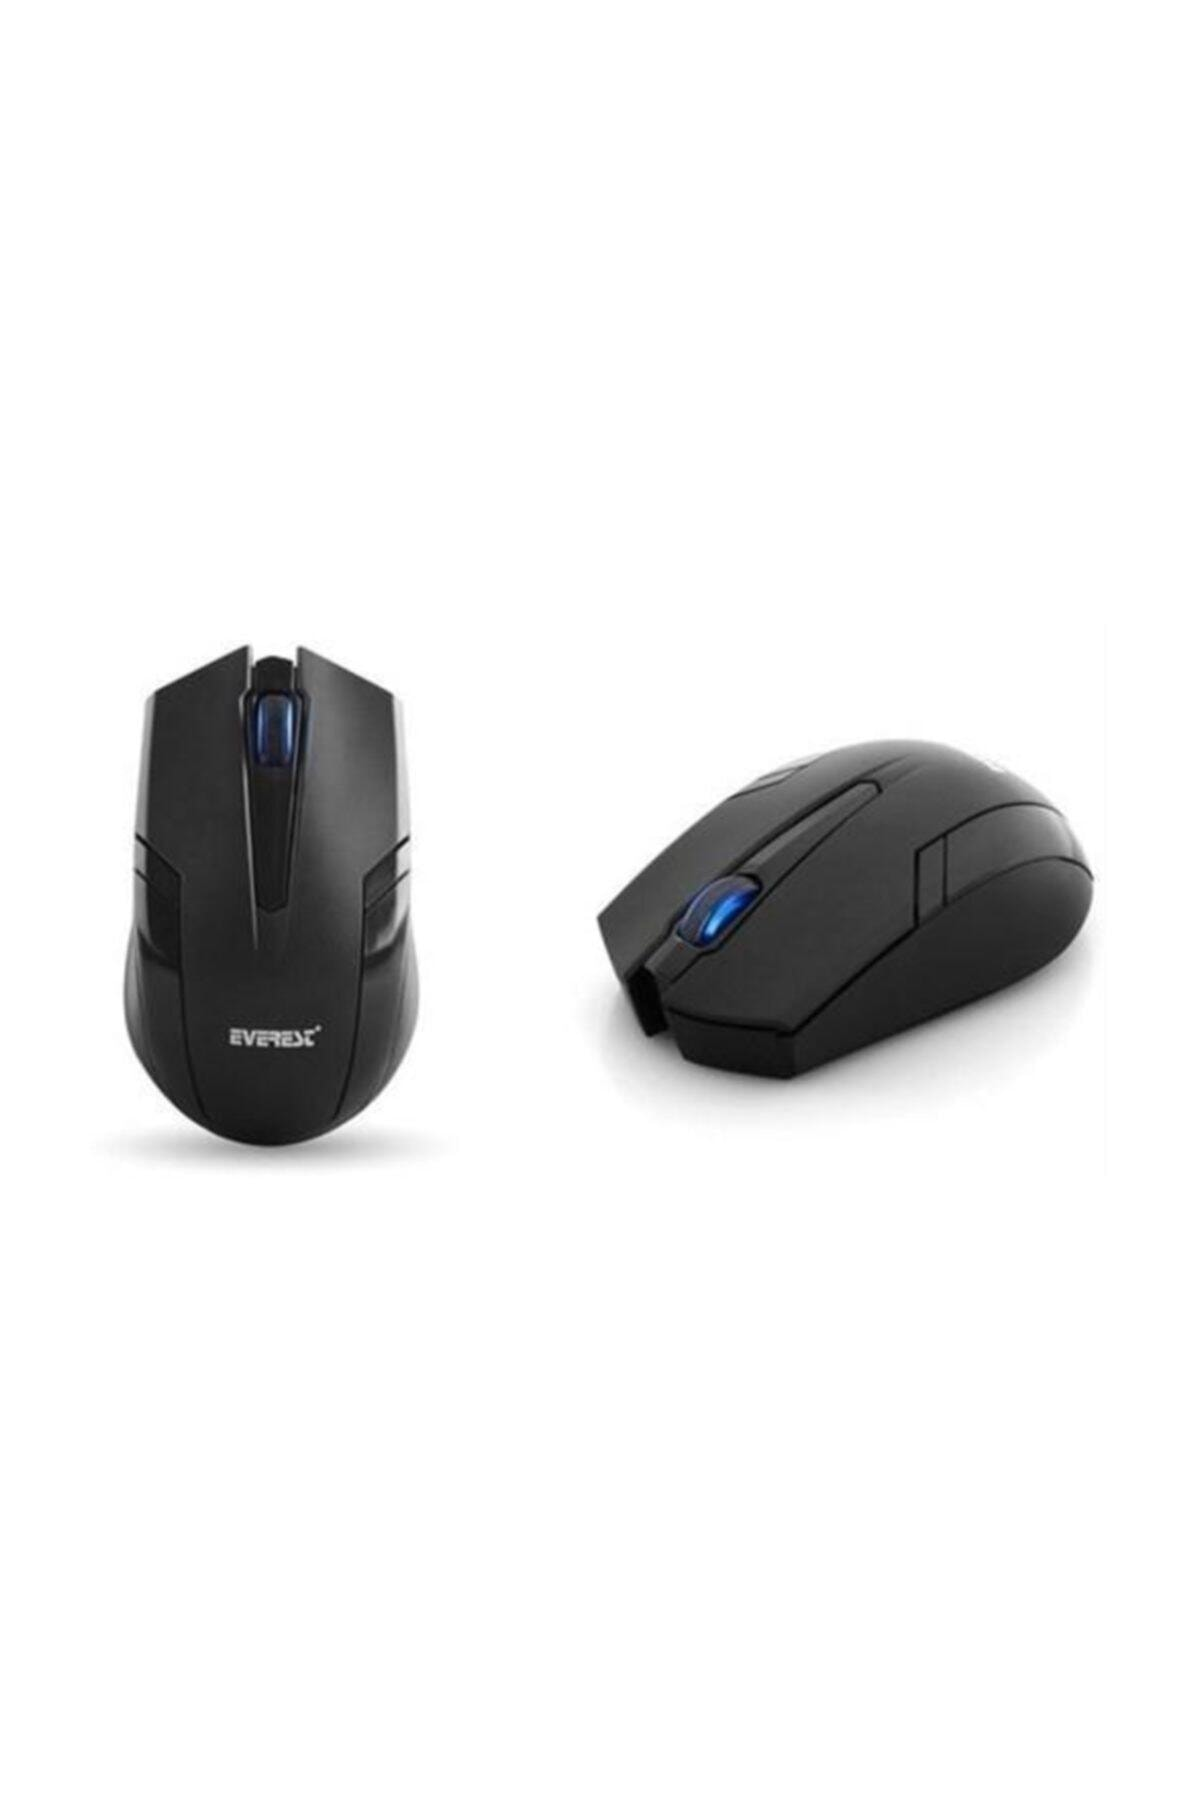 Everest Km-8000 Siyah Kablosuz Q Multimedia Klavye + Mouse Set 2